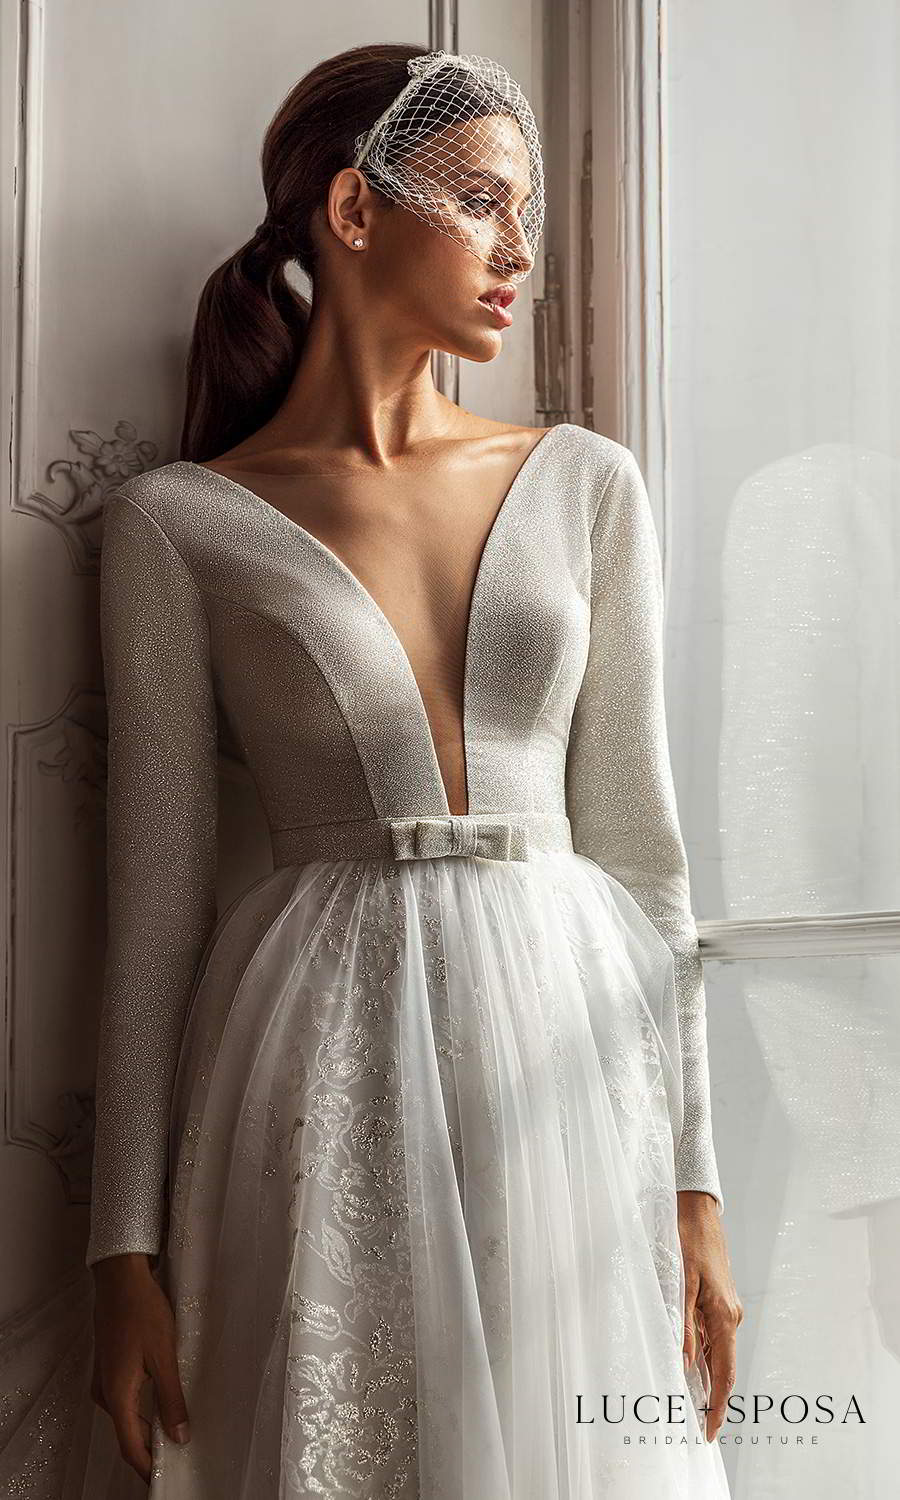 luce sposa 2021 shades of couture bridal long sleeves plunging v neckline embellished a line ball gown wedding dress chapel train (nicole) zv